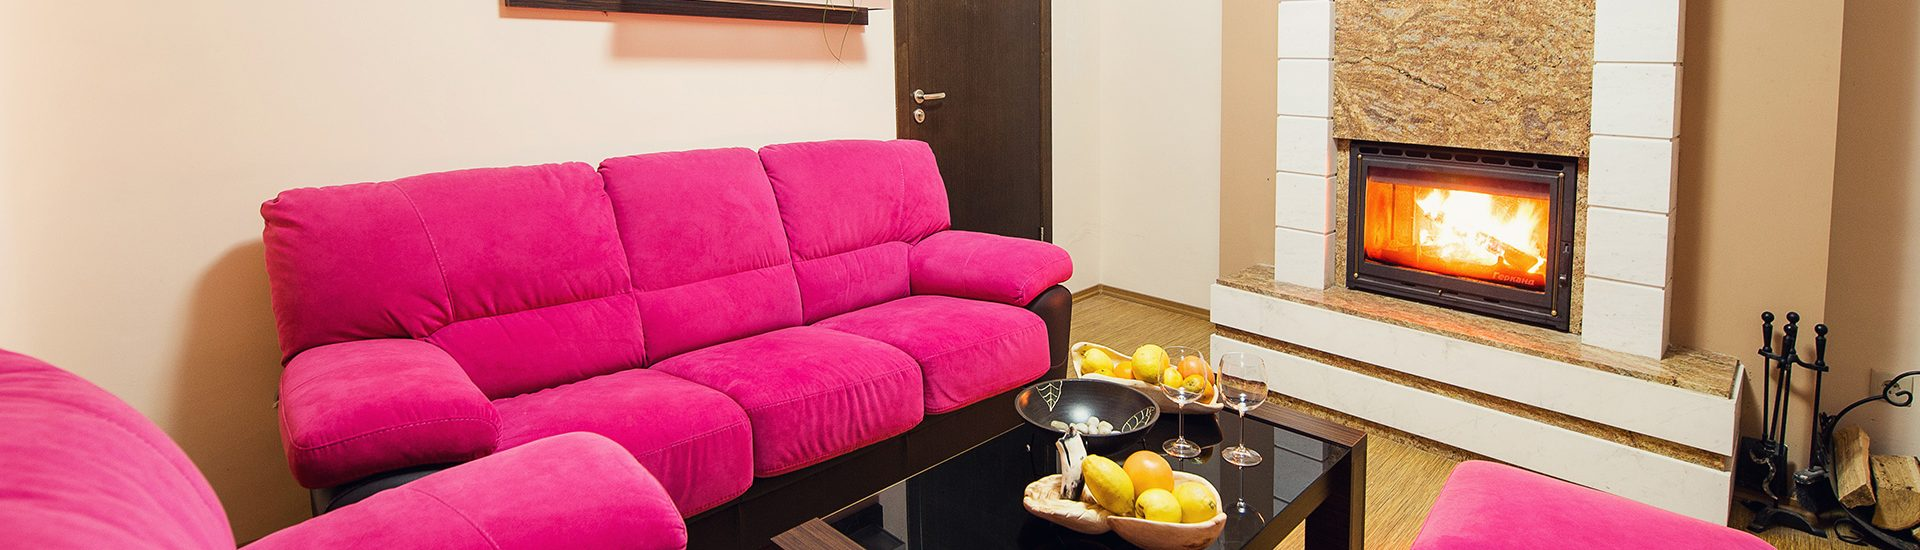 Grand FAMILY SPA HOTEL HEBAR - Rooms